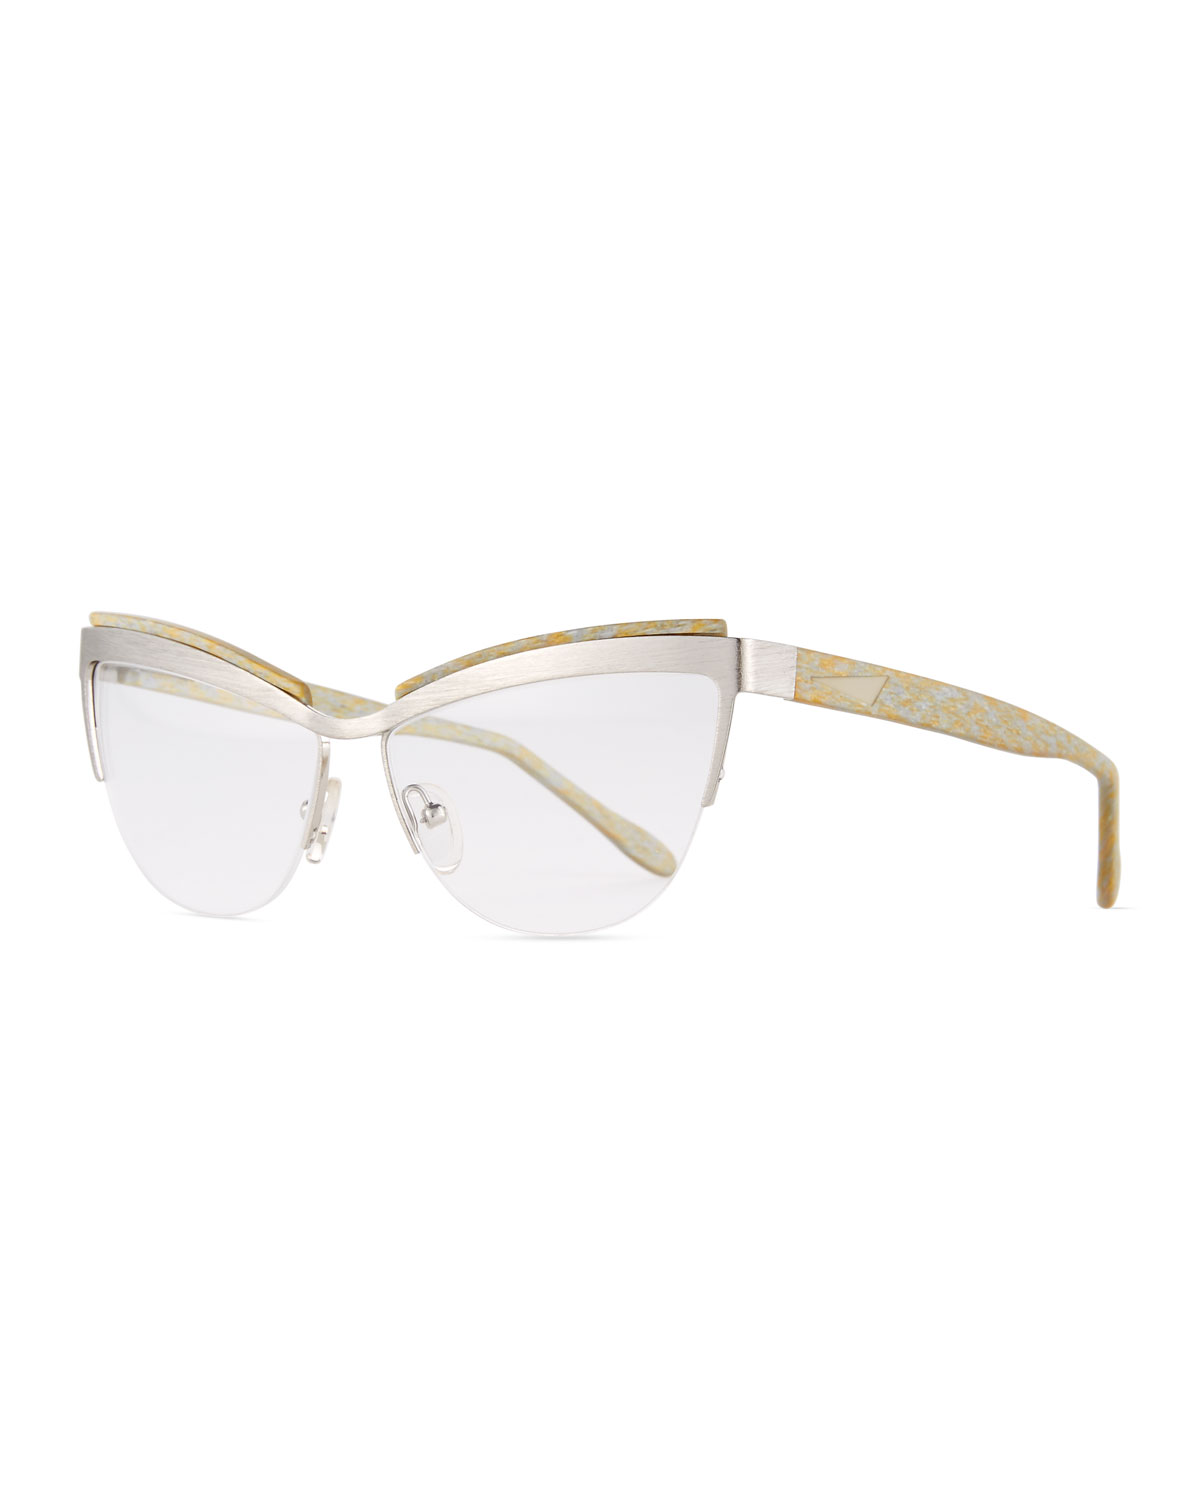 Prism Berlin Cat-Eye Optical Frames, Silver/Gold | Neiman Marcus